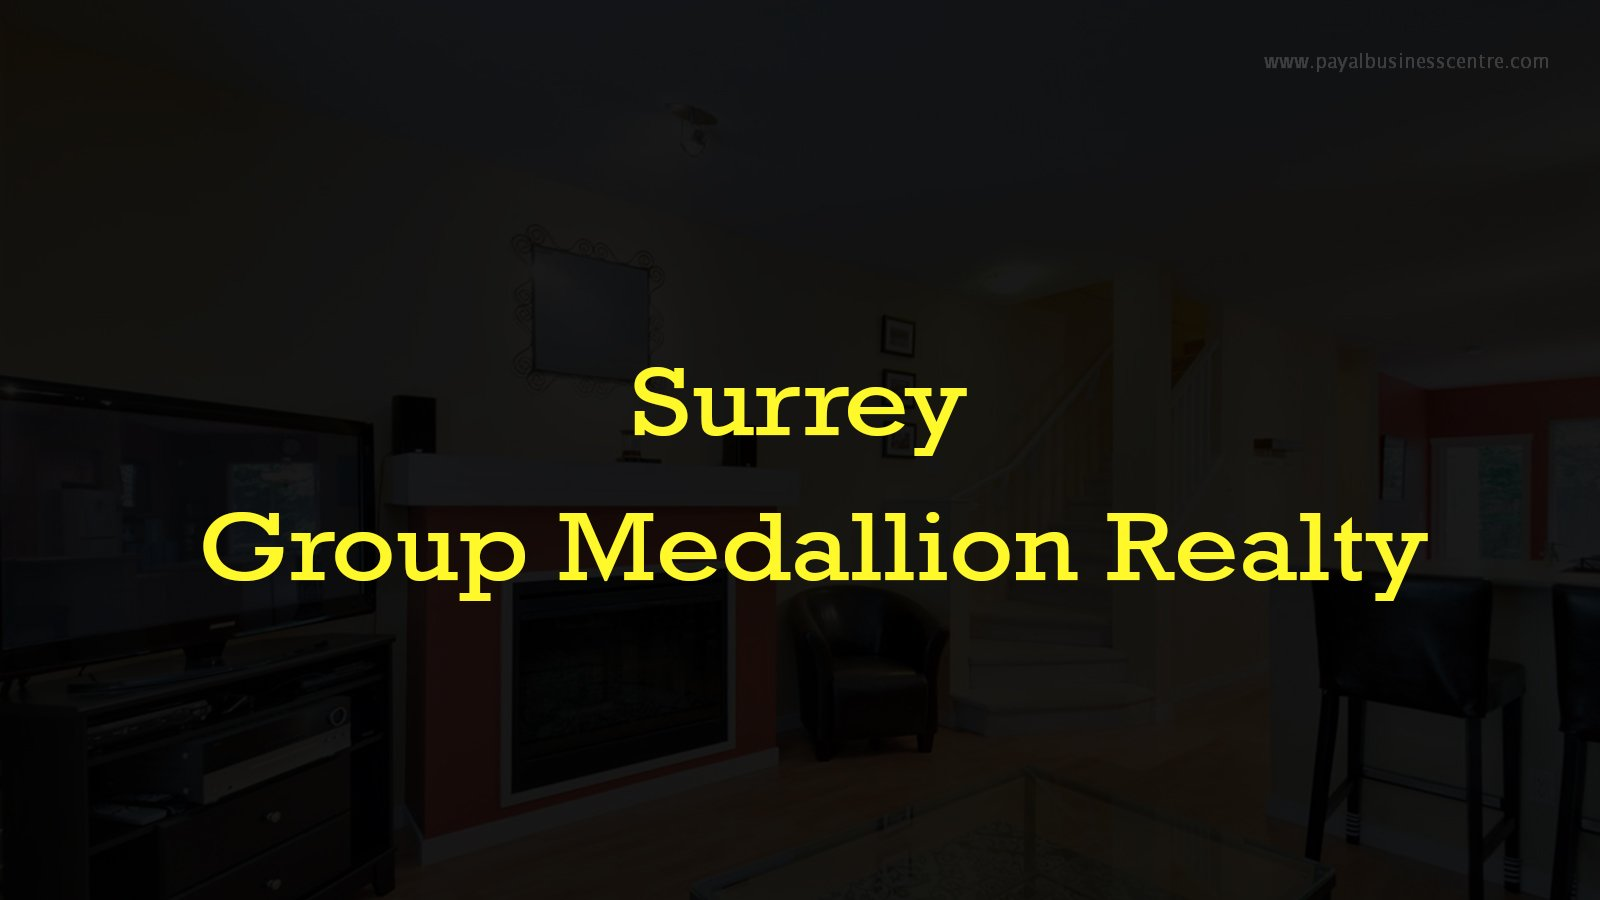 Surrey Group-Medallion Realty